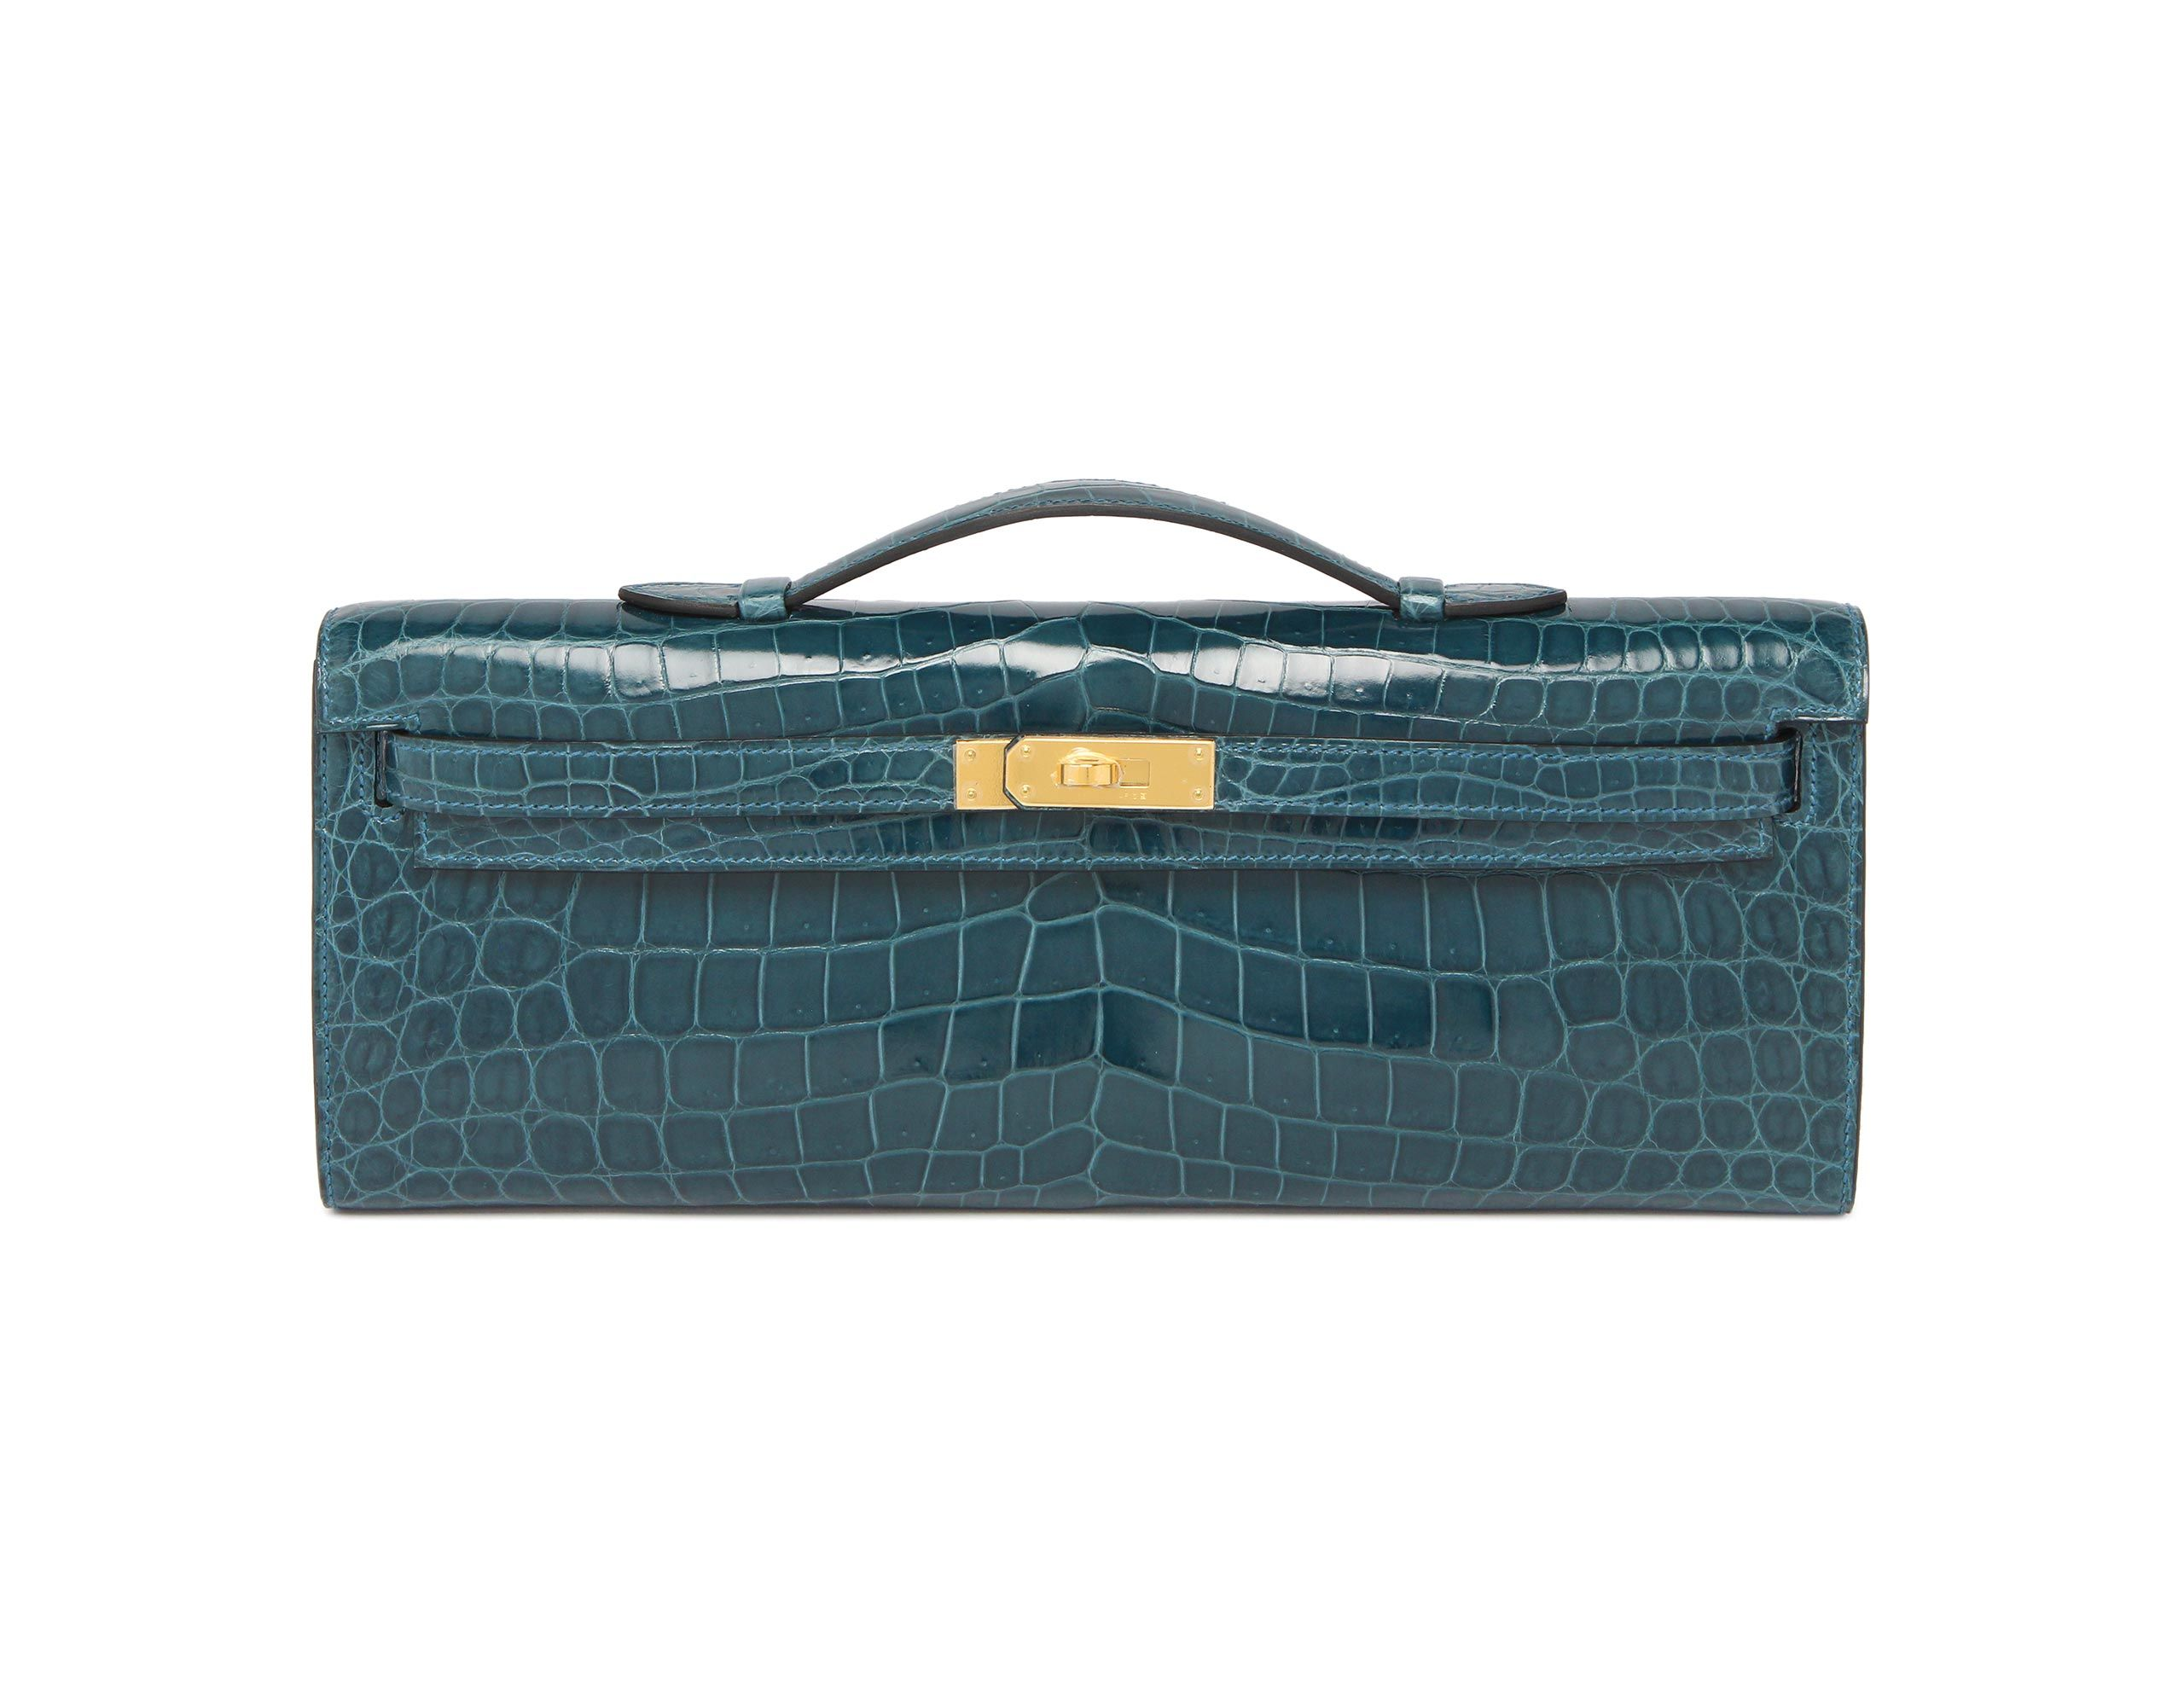 3b8b048fdcee Hermes Kelly Cut Blue Colvert Shiny Nilo Croc with Gold